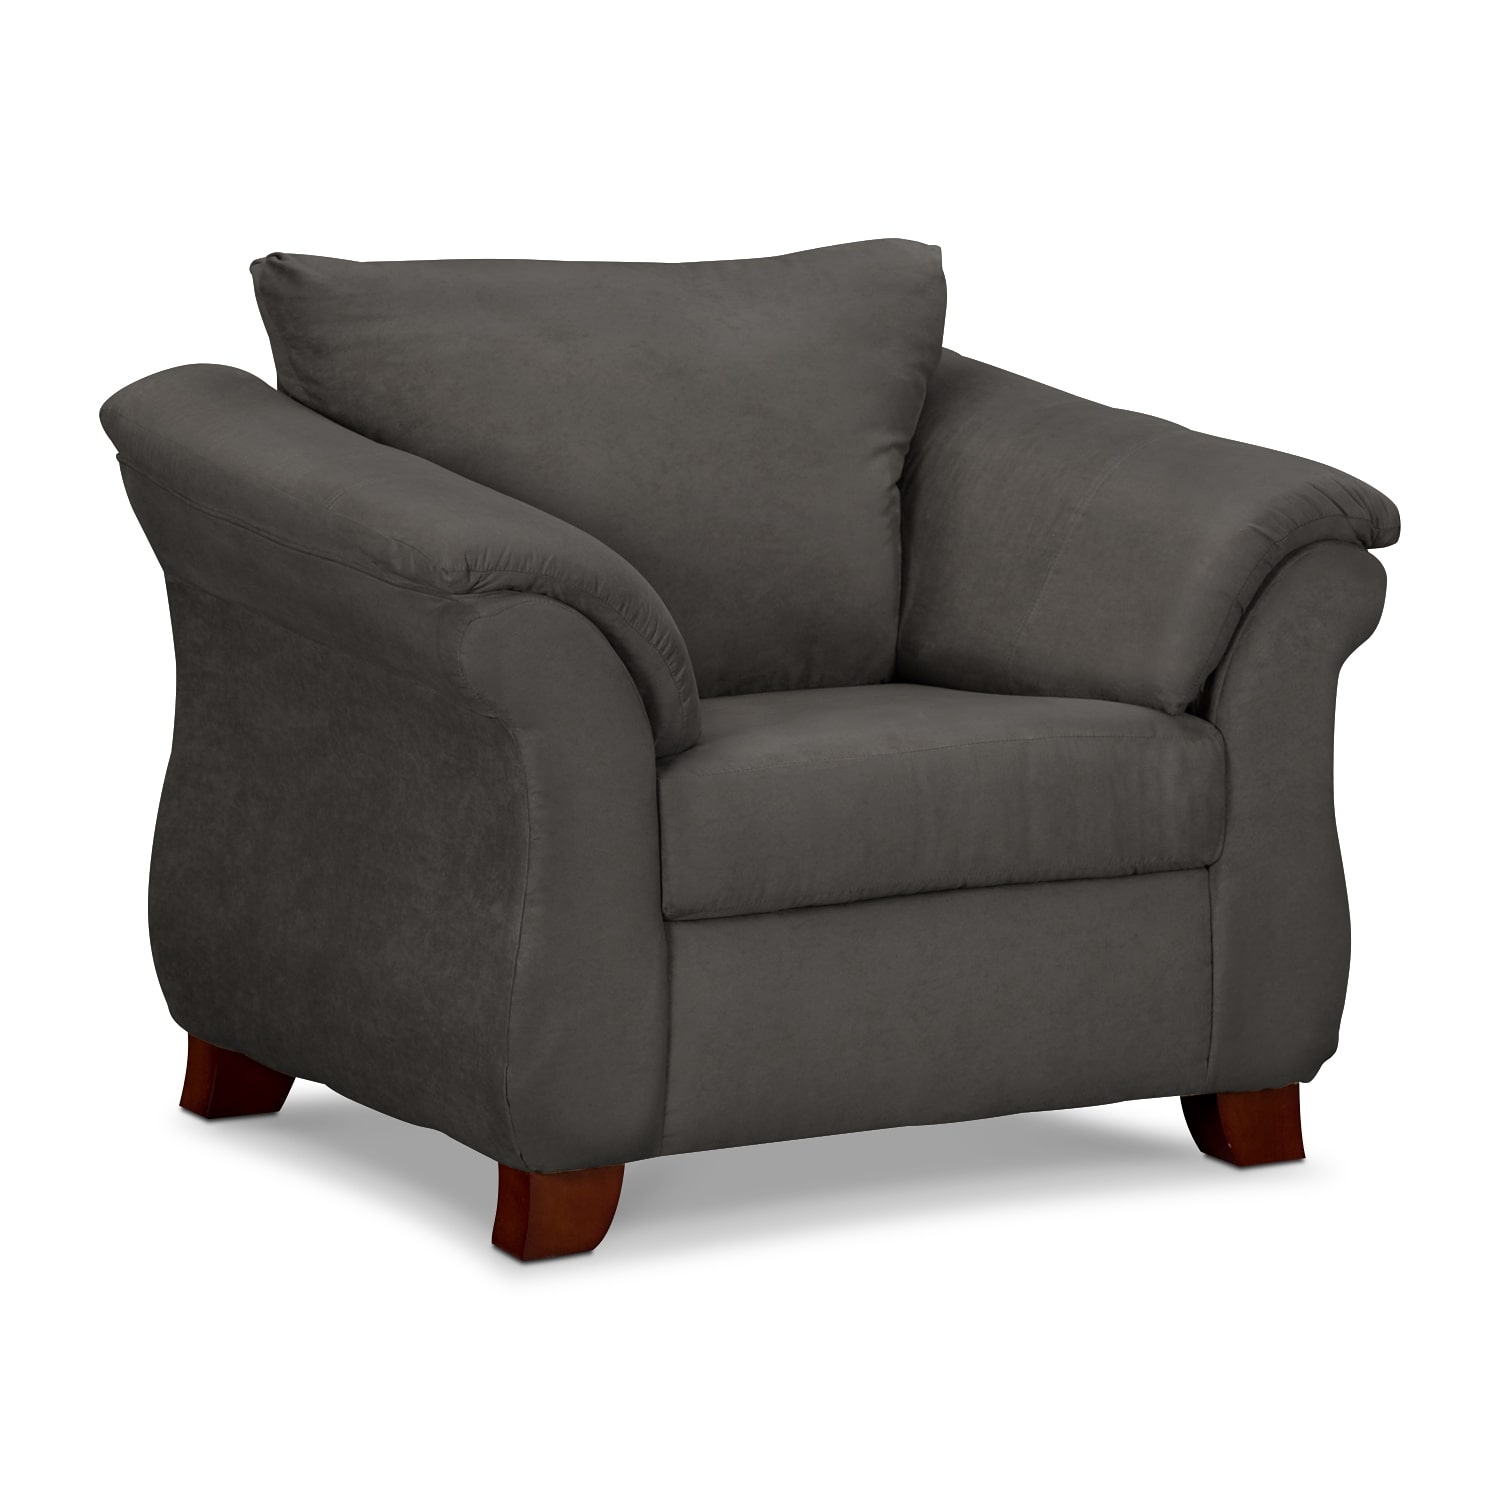 Living Room Furniture - Adrian Graphite Chair